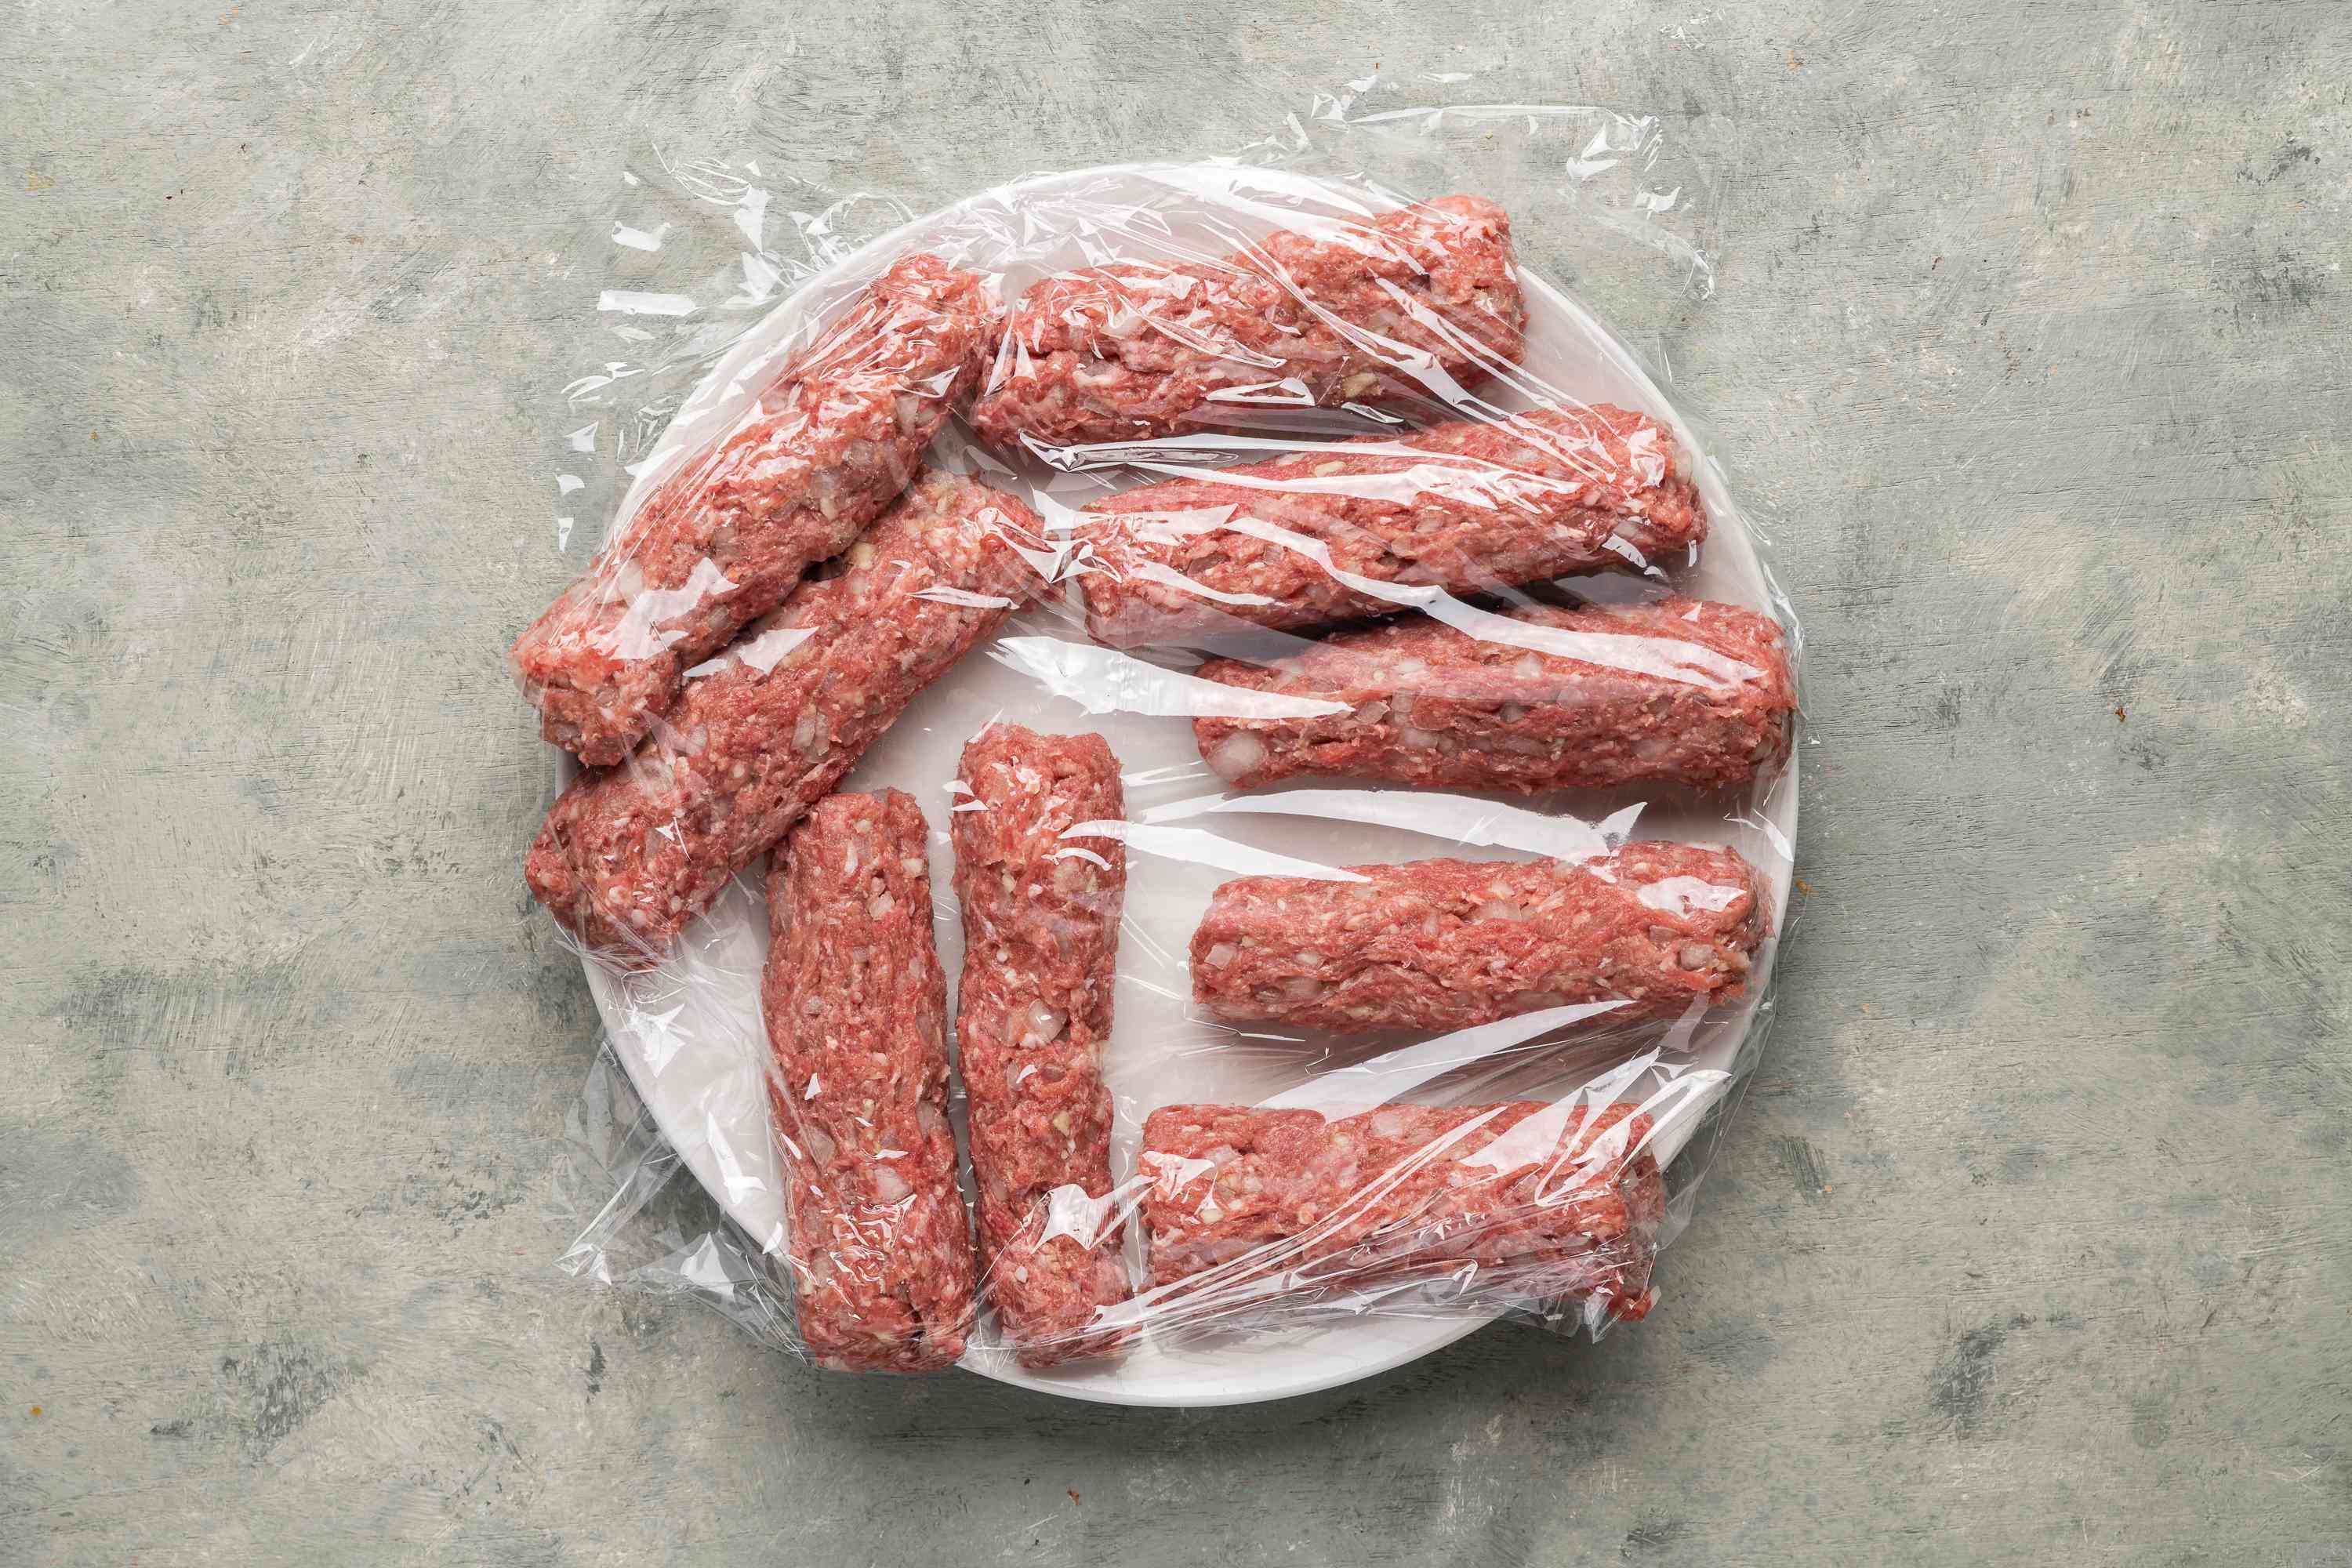 Place the sausages on a plastic wrap-lined plate, covered with plastic